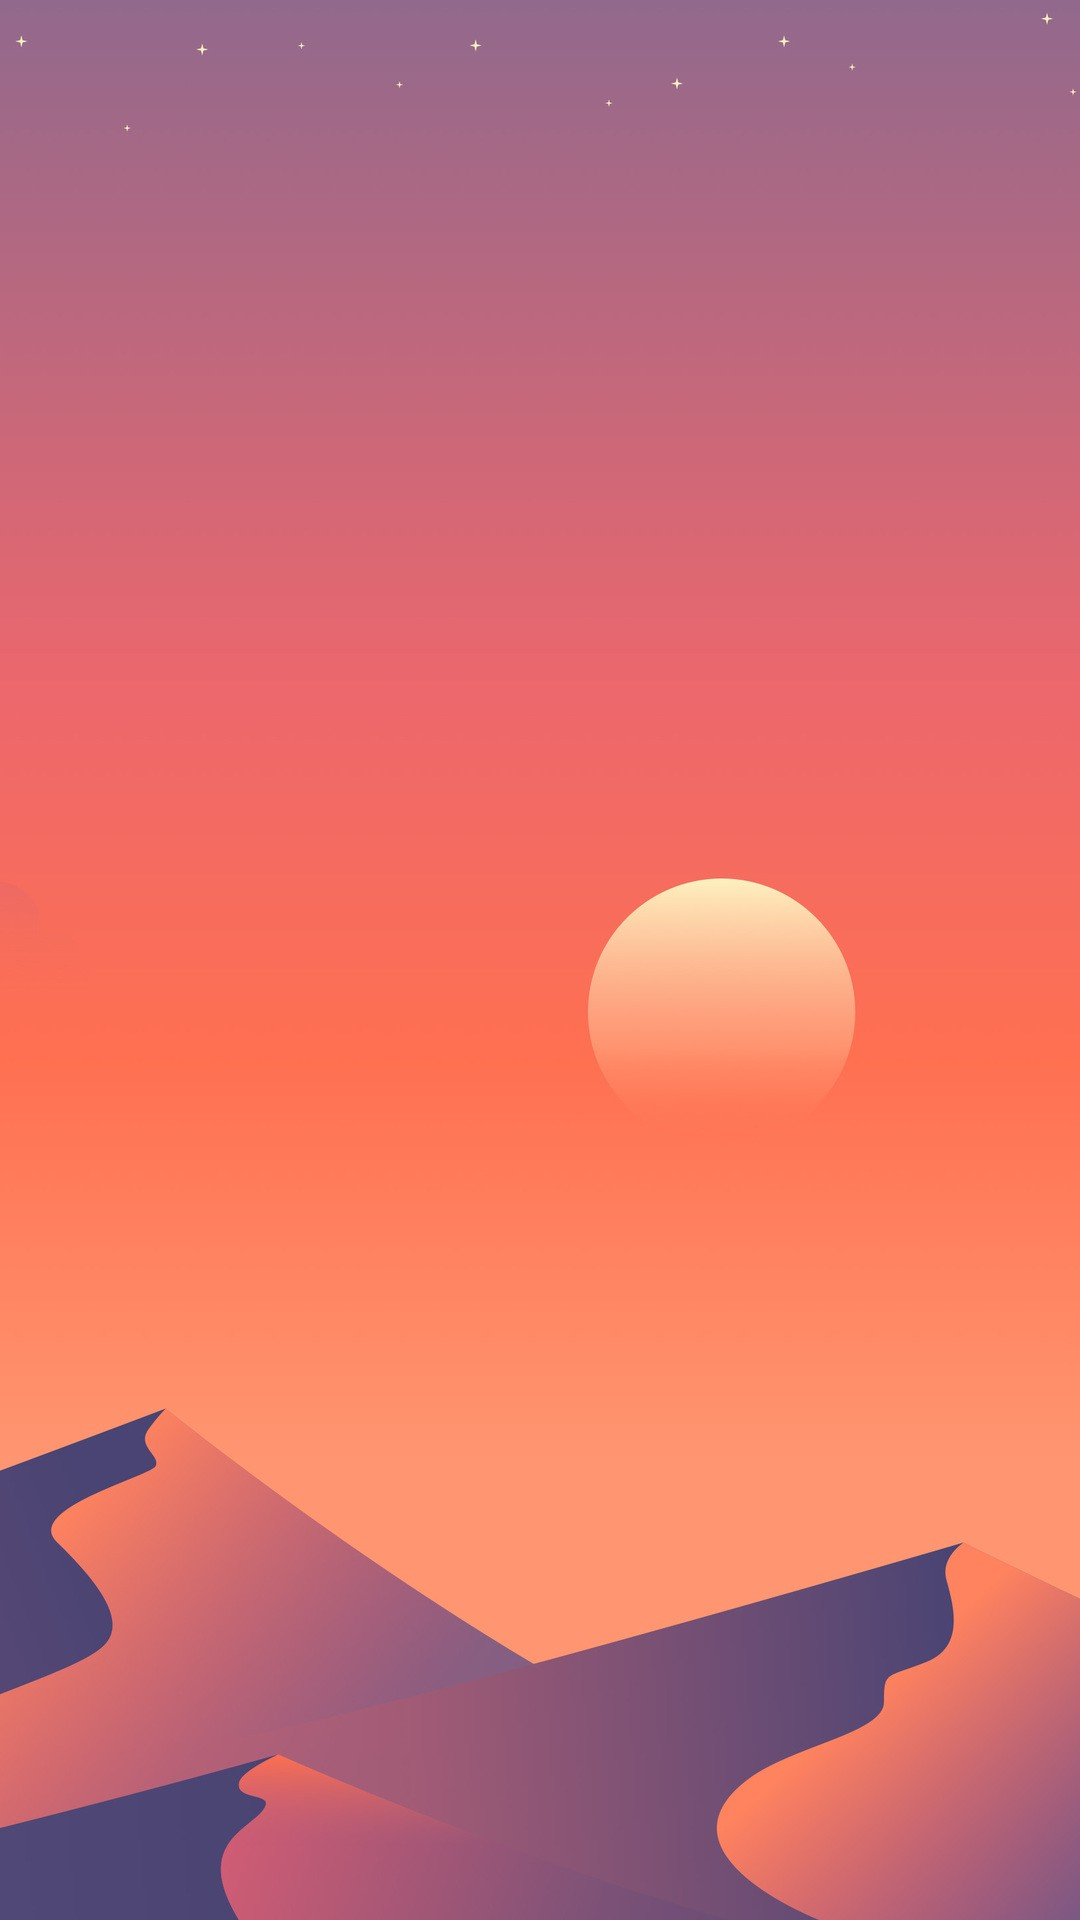 Desert sun day minimalism 1a wallpaper 1080x1920 for Minimal art hd